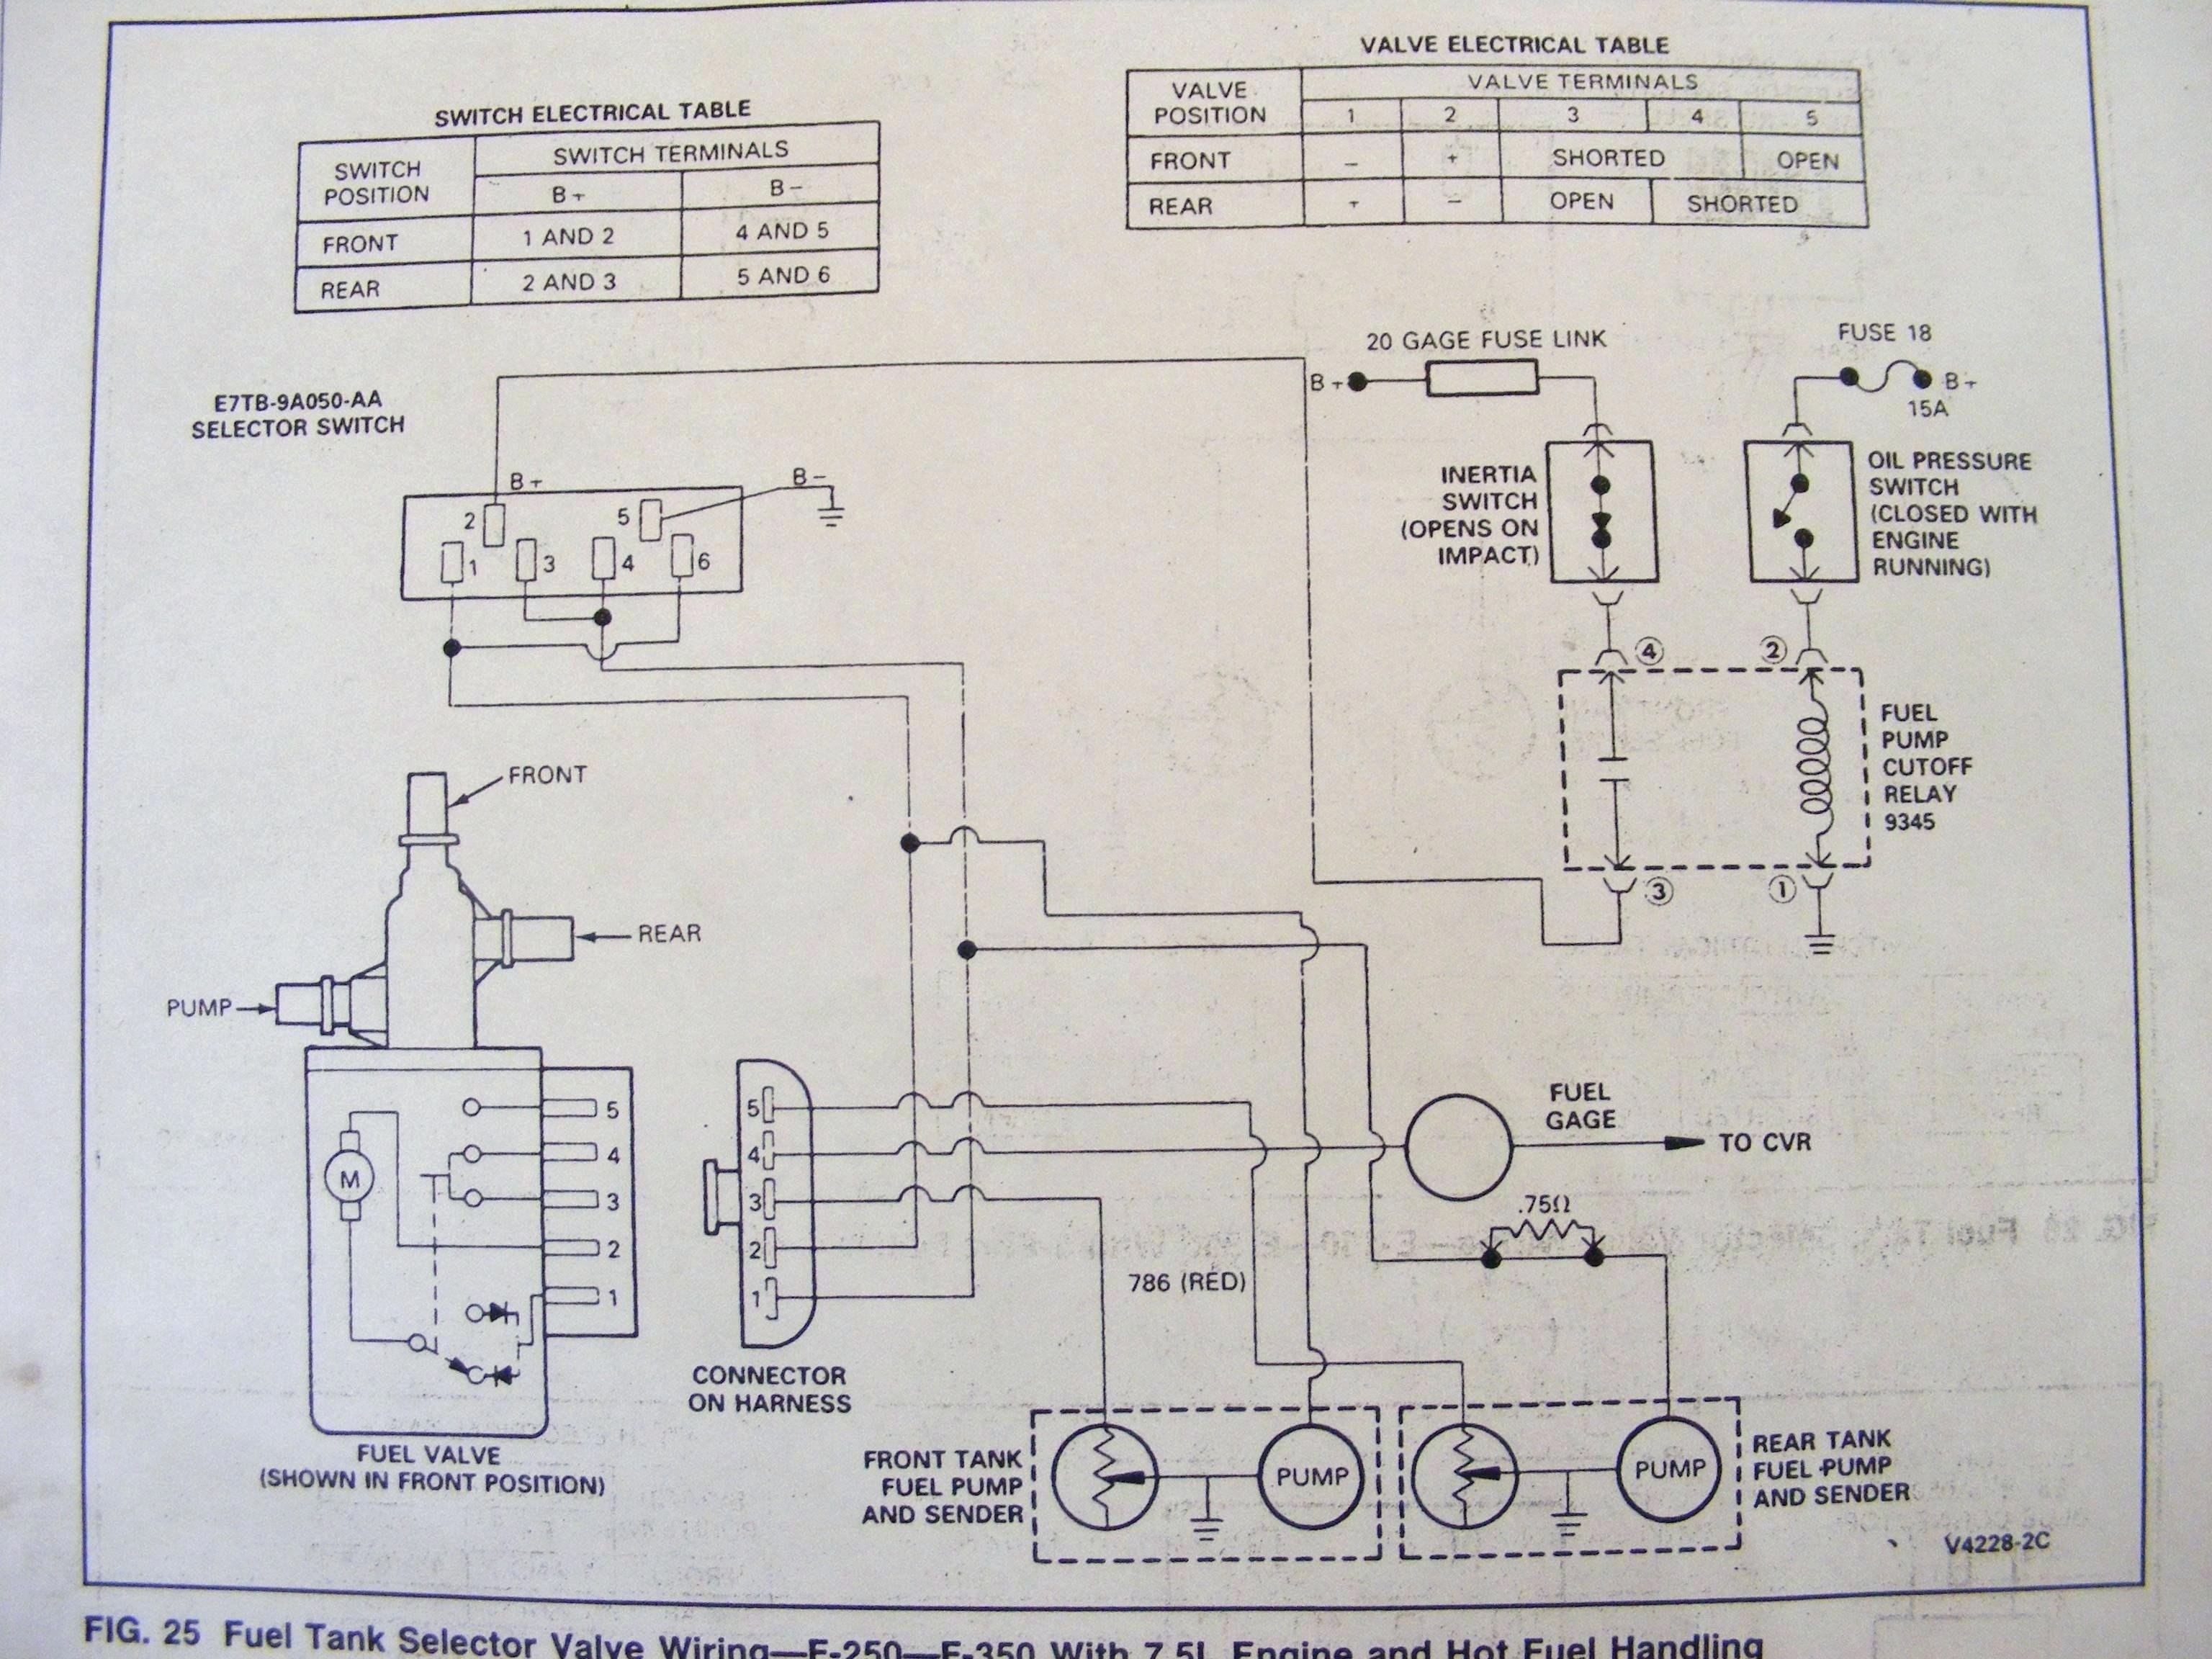 Coleman Mach Thermostat Wiring Diagram | Wiring Diagram - Coleman Mach Thermostat Wiring Diagram